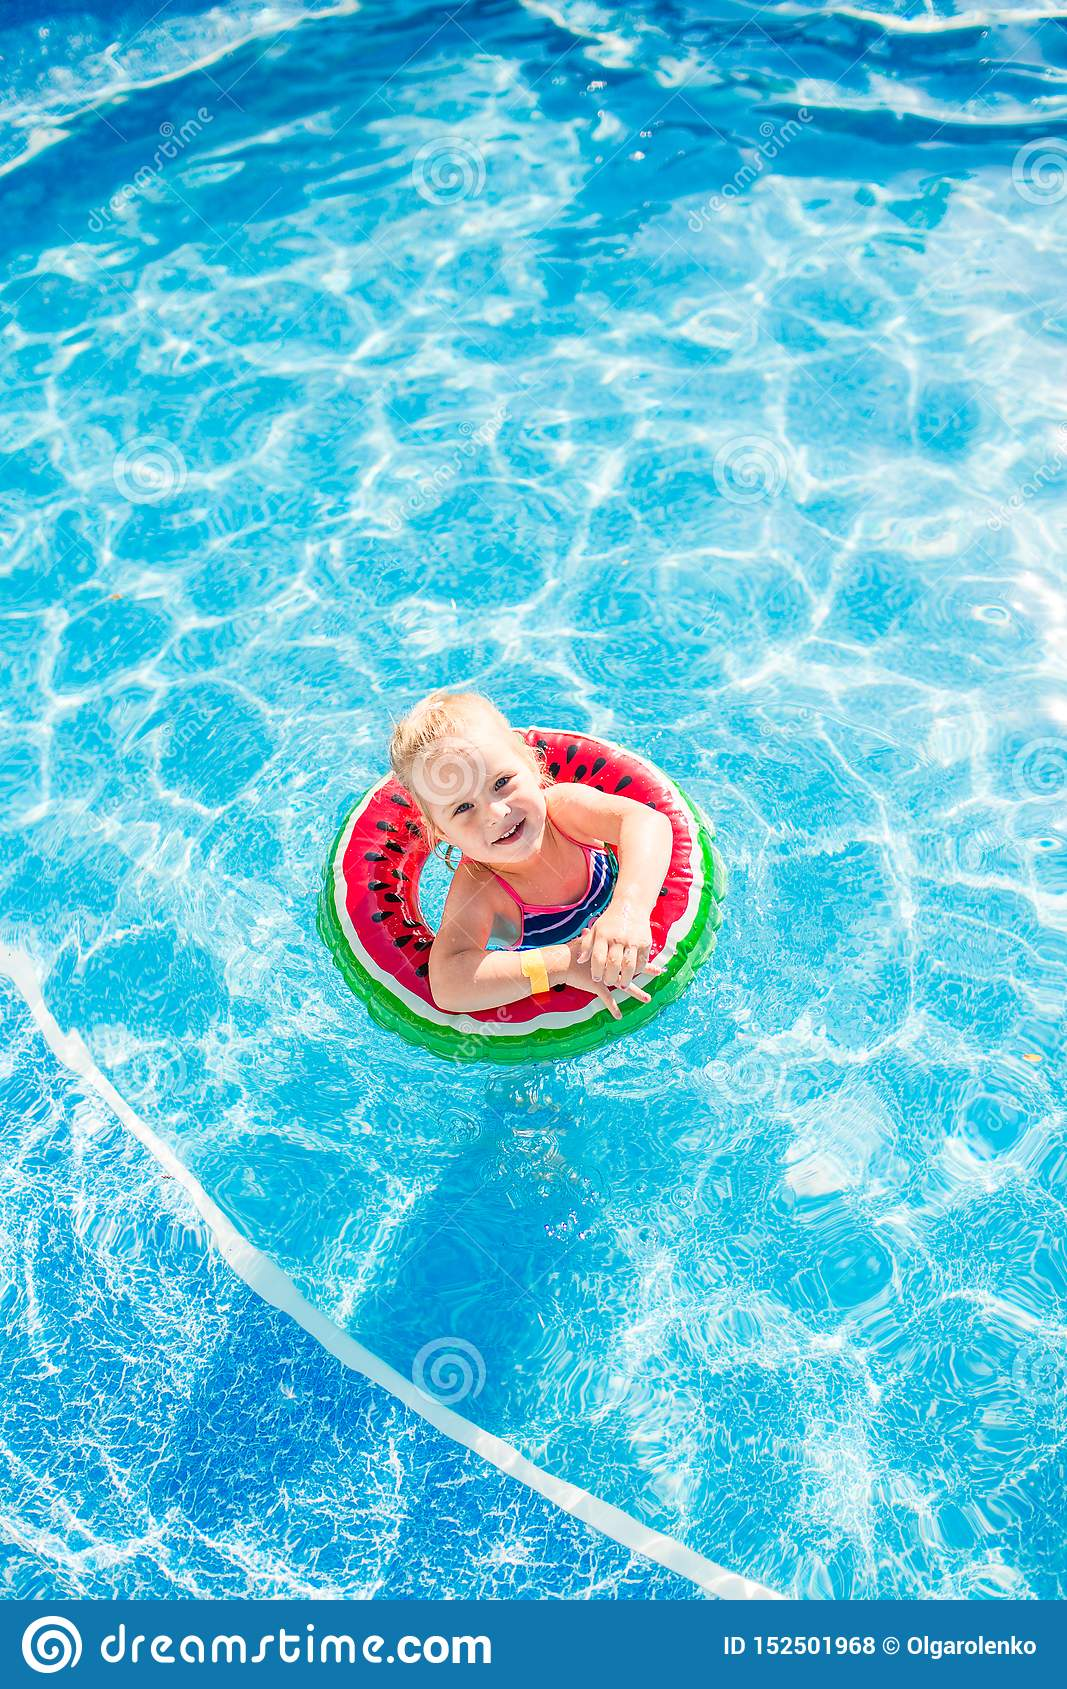 Swimming, summer vacation - lovely smiling girl playing in blue water with lifebuoy-watermelon